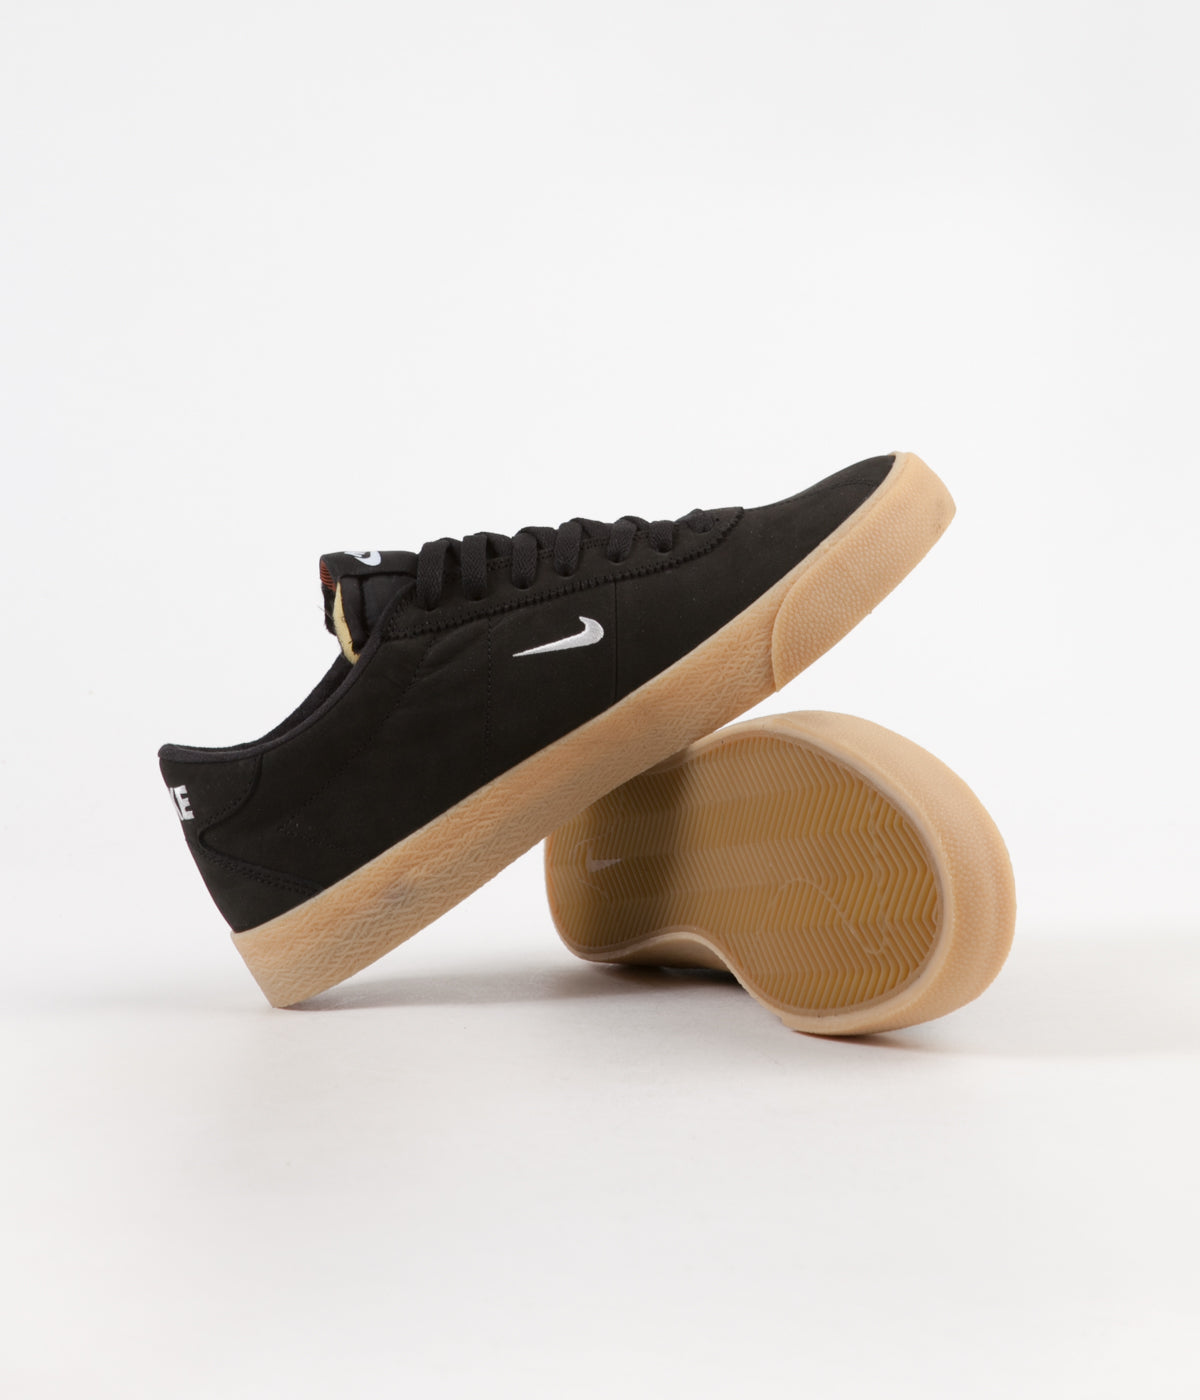 online retailer 156f2 12824 ... Nike SB Orange Label Bruin Ultra Shoes - Black   White - Safety Orange  ...